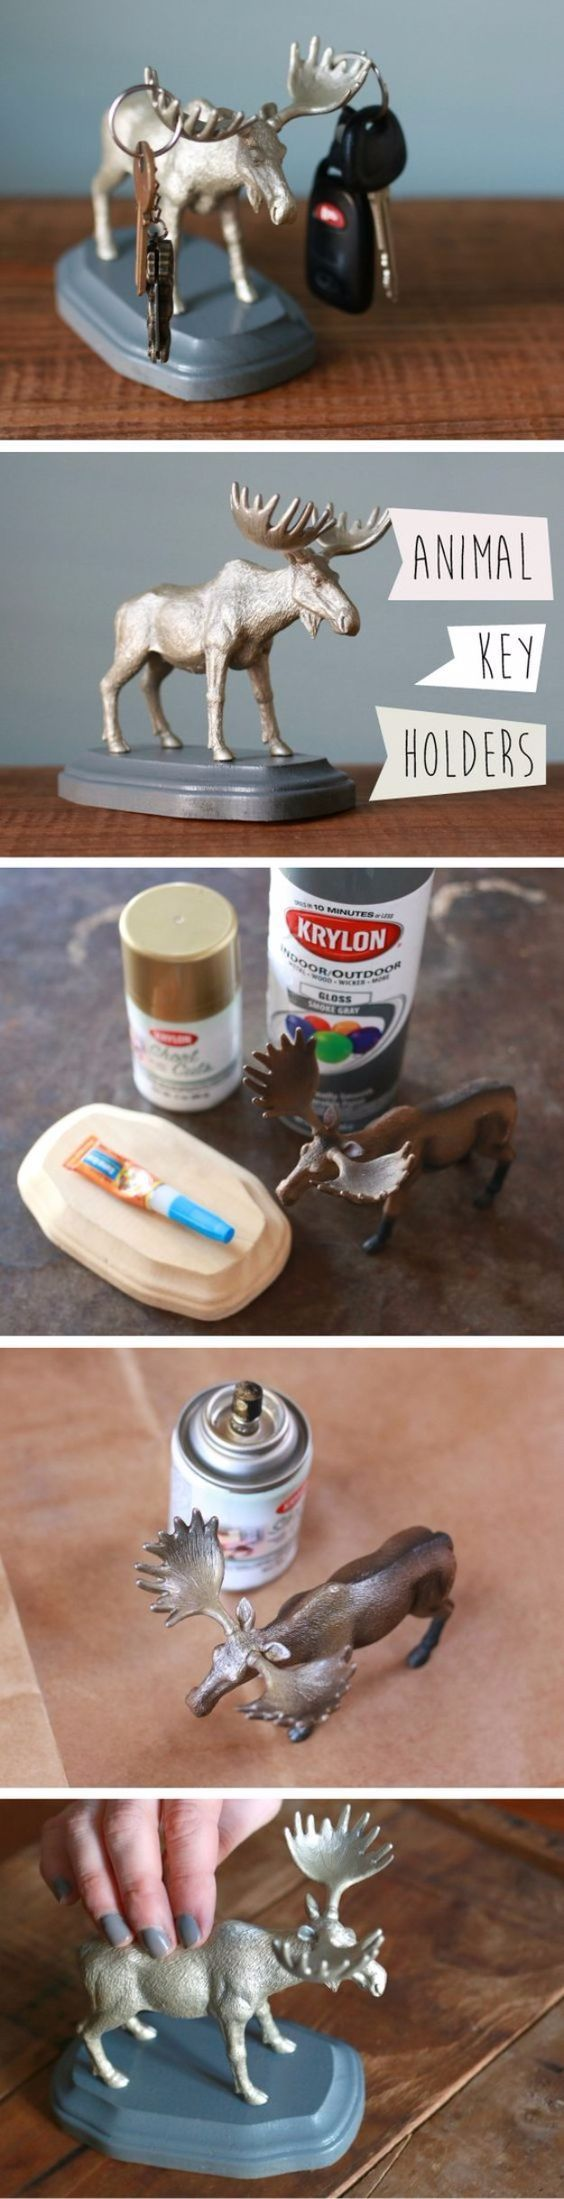 Easy Crafts To Make and Sell - Animal Key Holders - Cool Homemade Craft Projects You Can Sell On Etsy, at Craft Fairs, Online and in Stores. Quick and Cheap DIY Ideas that Adults and Even Teens Can Make http://diyjoy.com/easy-crafts-to-make-and-sell: